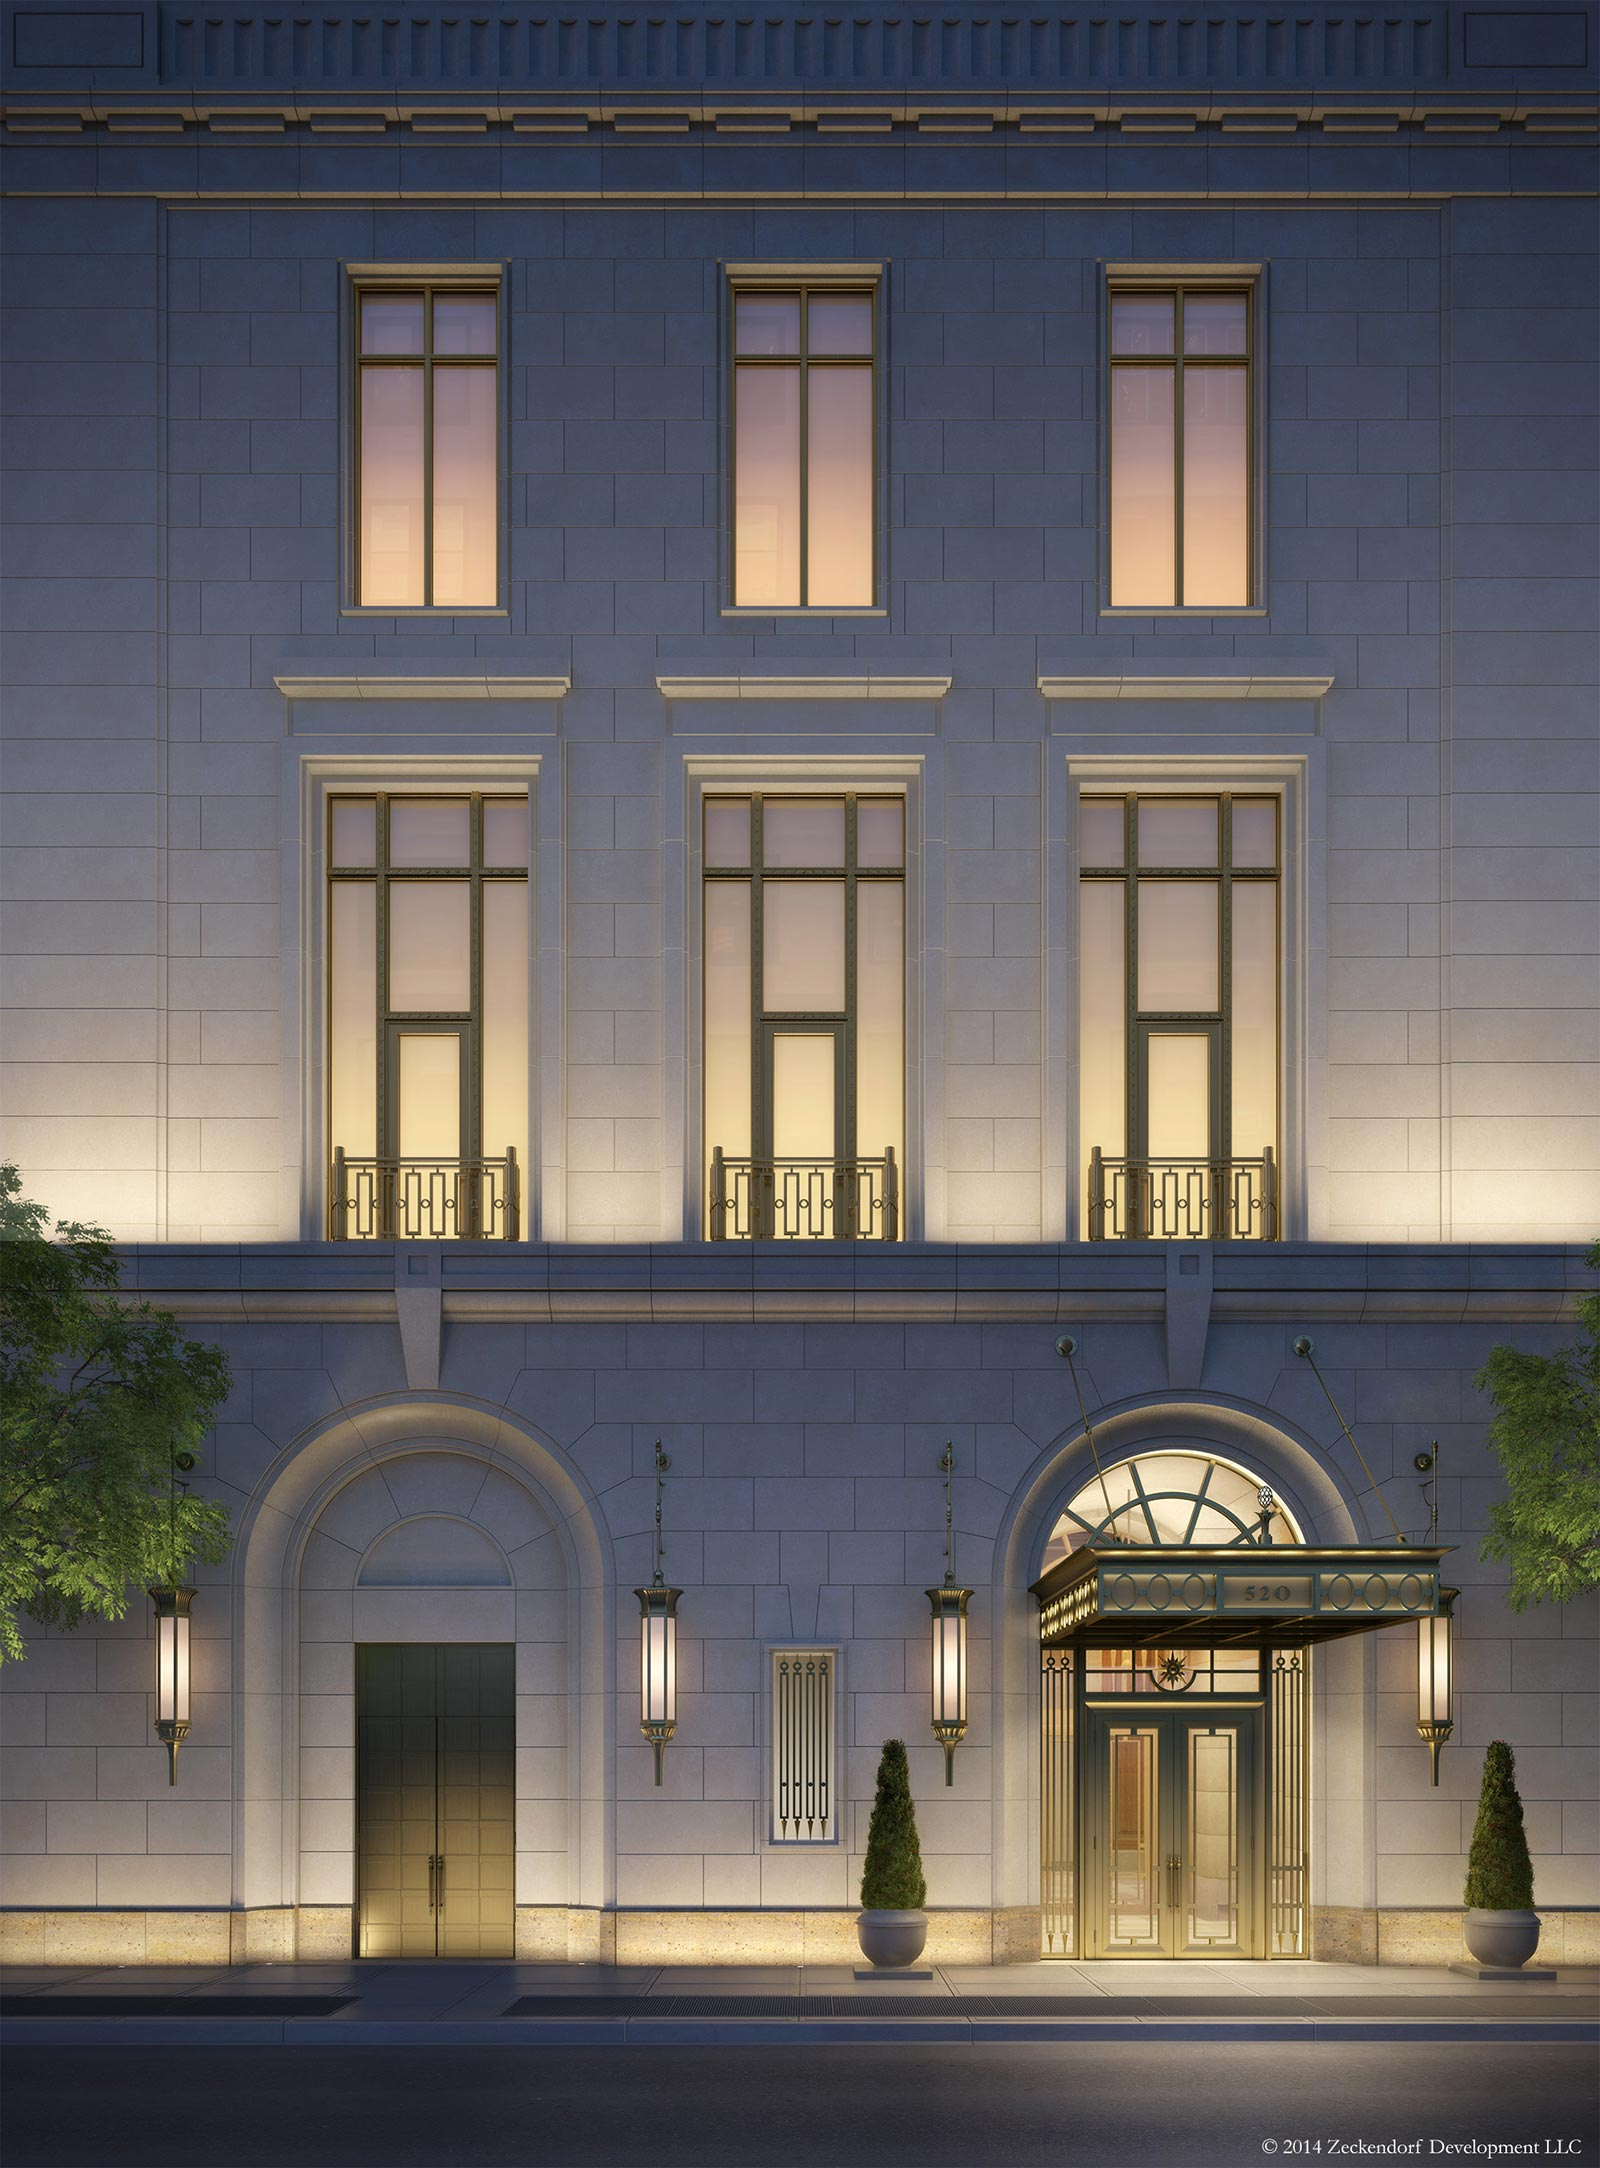 520 Park Avenue, 45 East 60th Street, Zeckendorf Development, Robert AM Stern, RAMS, Central Park nyc